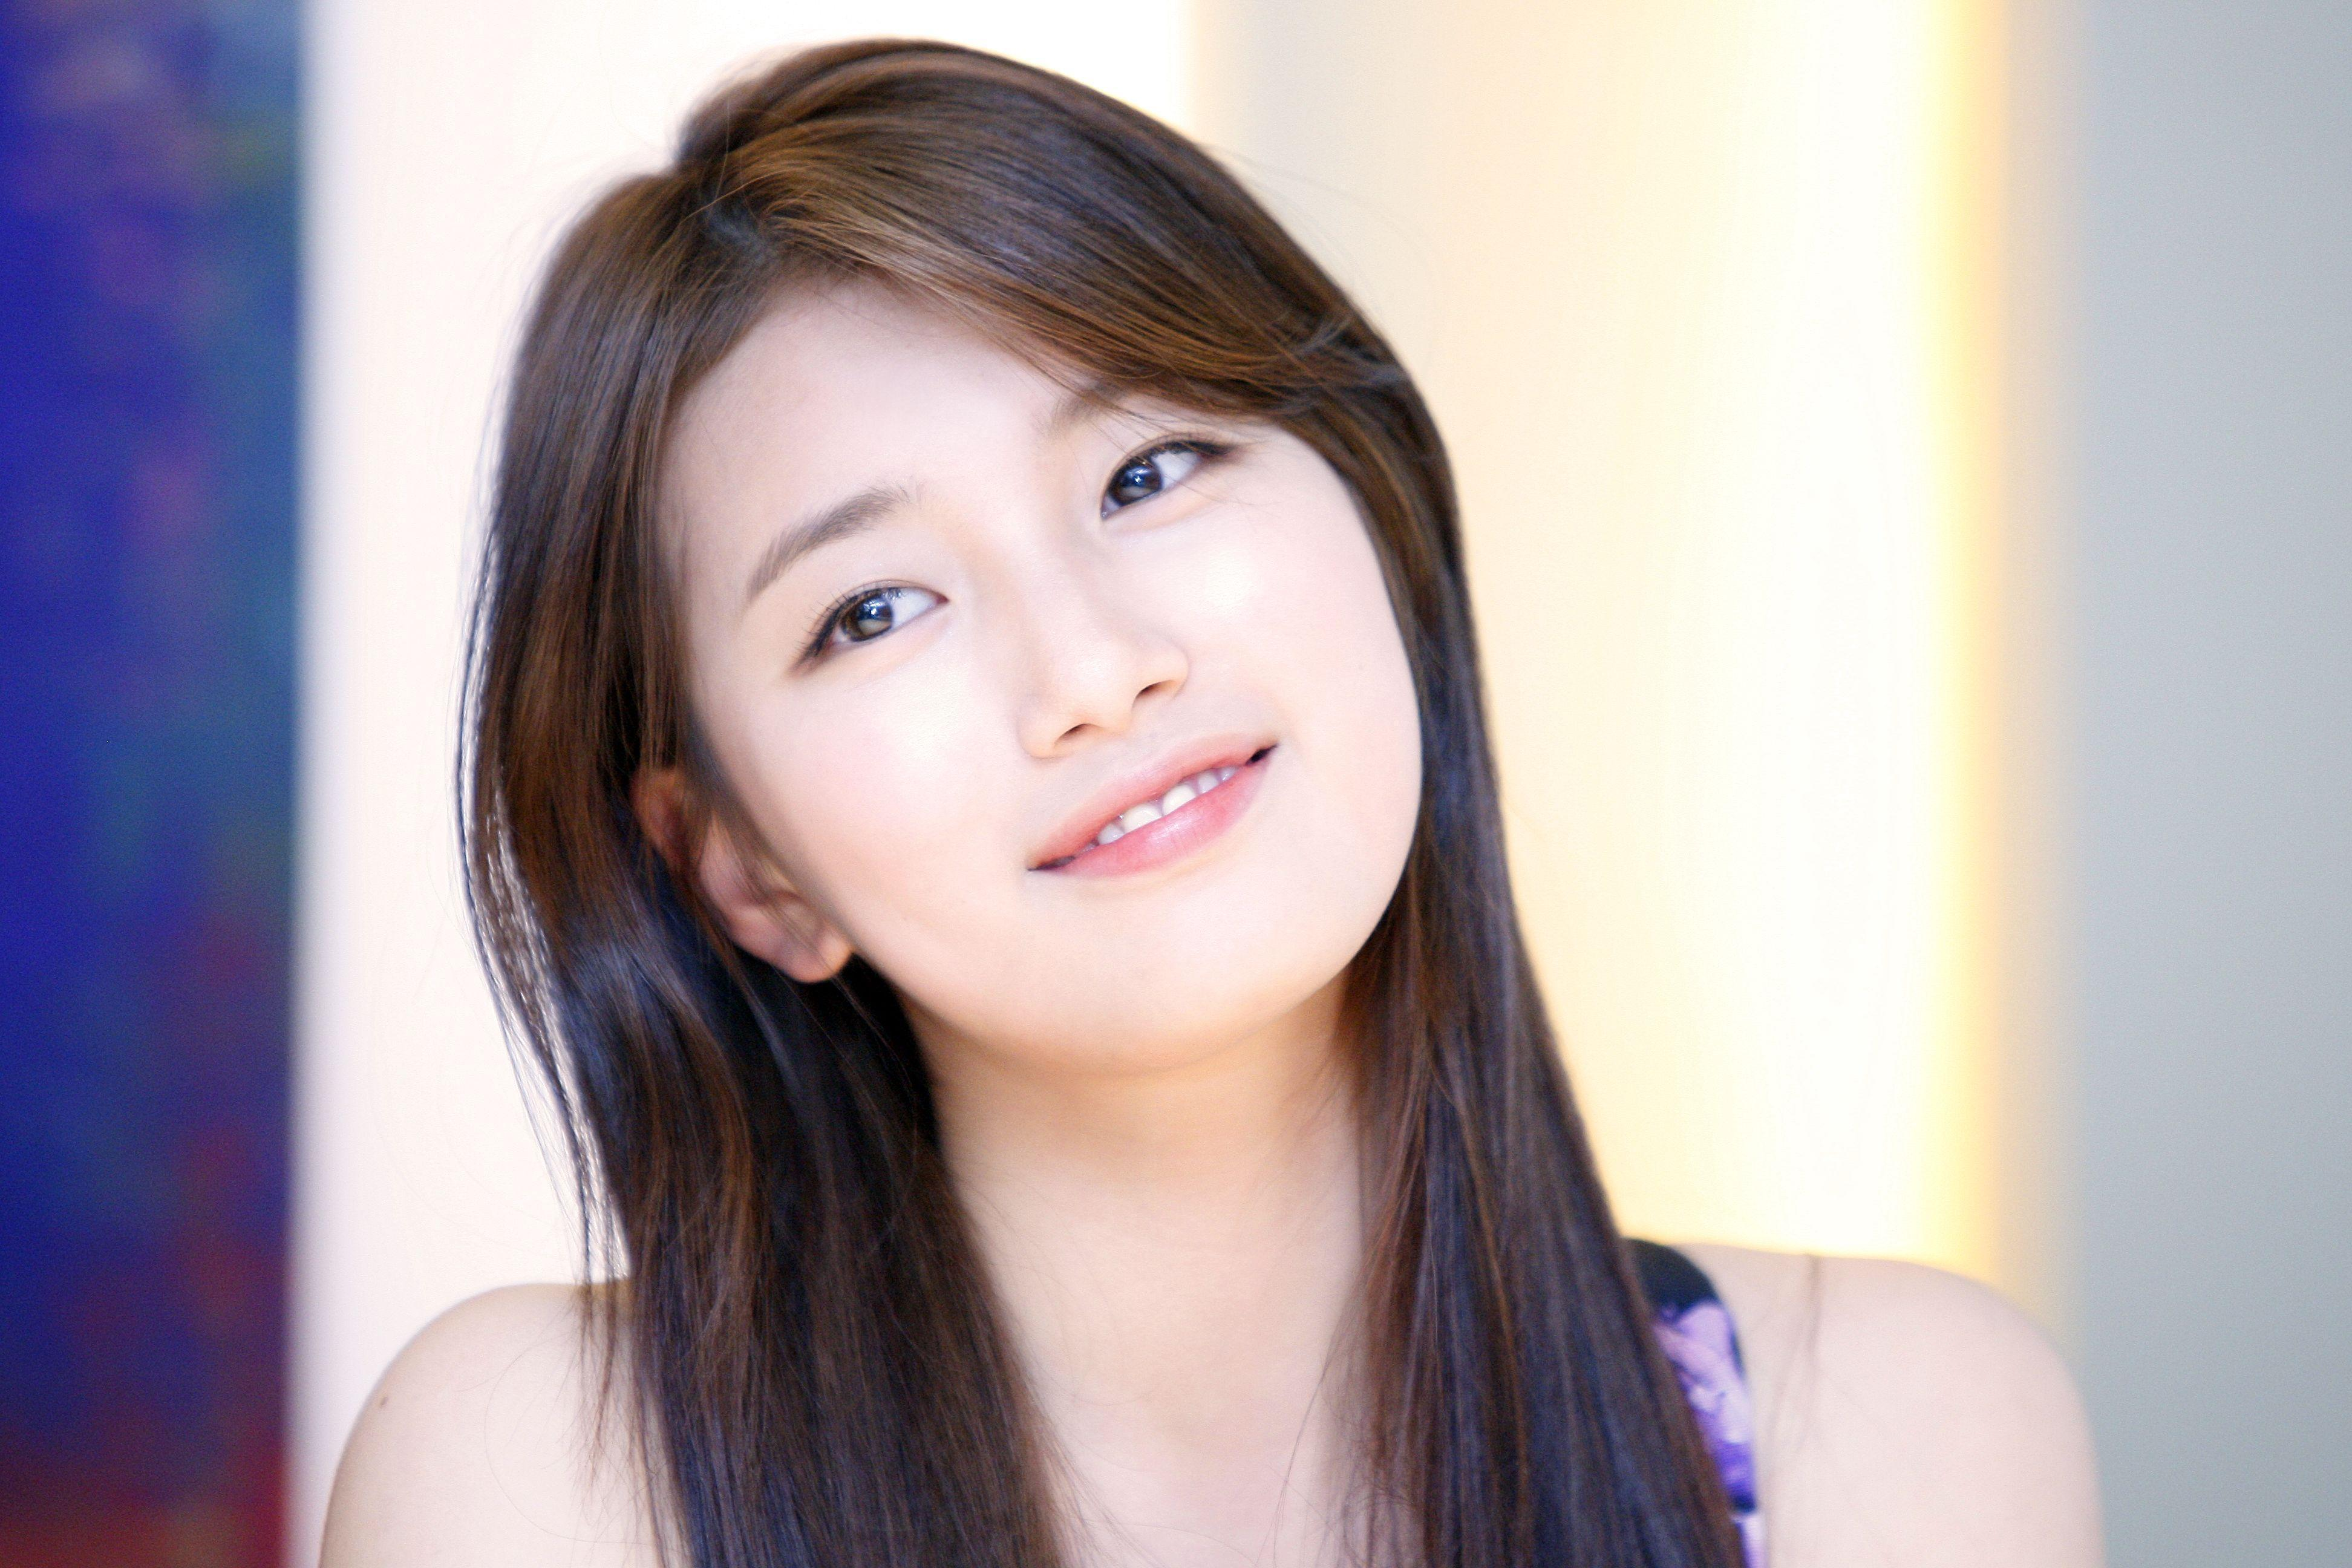 Wallpapers of bae suzy south korean singer actress - 99 HD Wallpapers